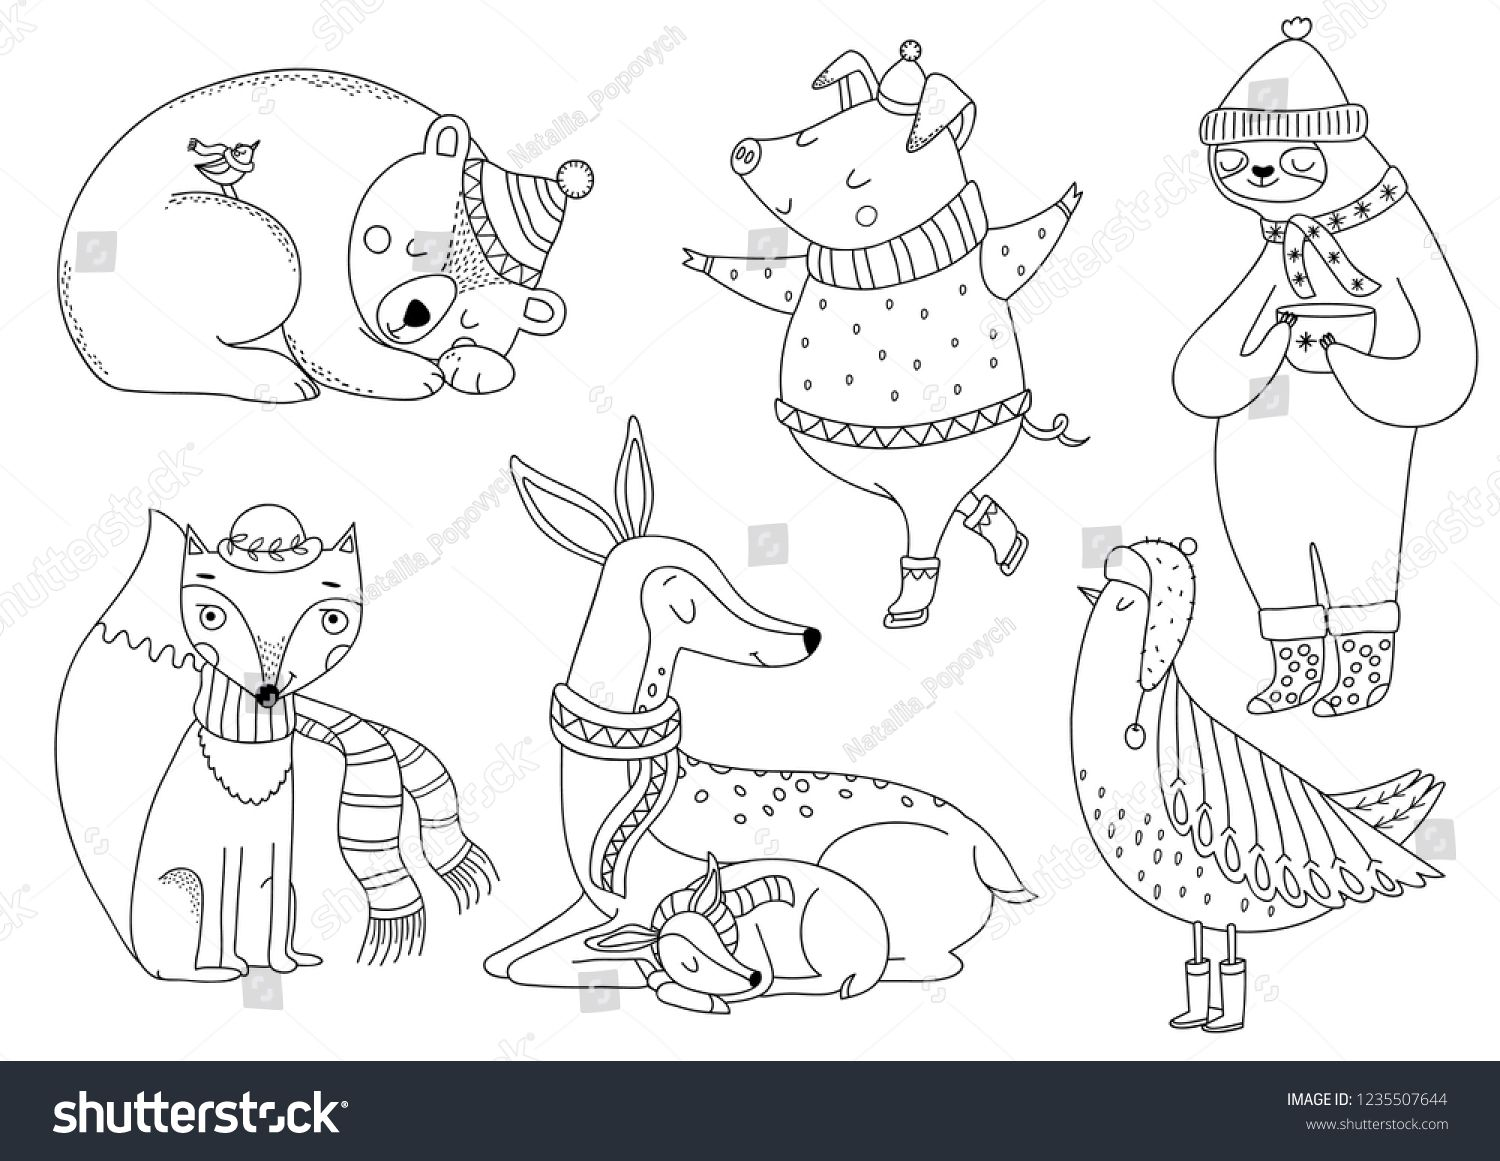 Cute Animals Coloring Page Outline Animal Characters Forest Animals Collection With Deer Family Christmas Bear Animal Coloring Pages Winter Bird Deer Family